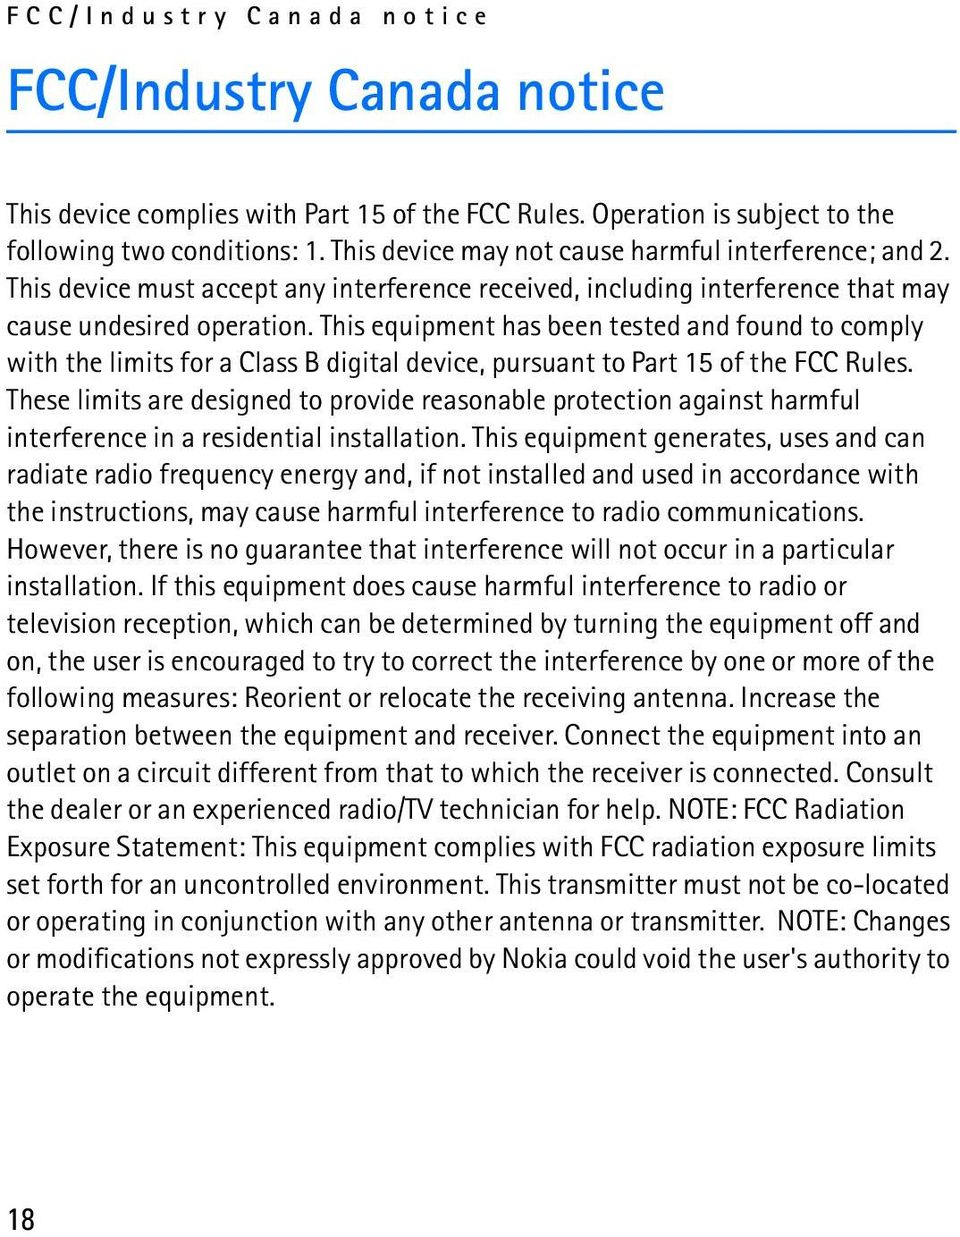 This equipment has been tested and found to comply with the limits for a Class B digital device, pursuant to Part 15 of the FCC Rules.